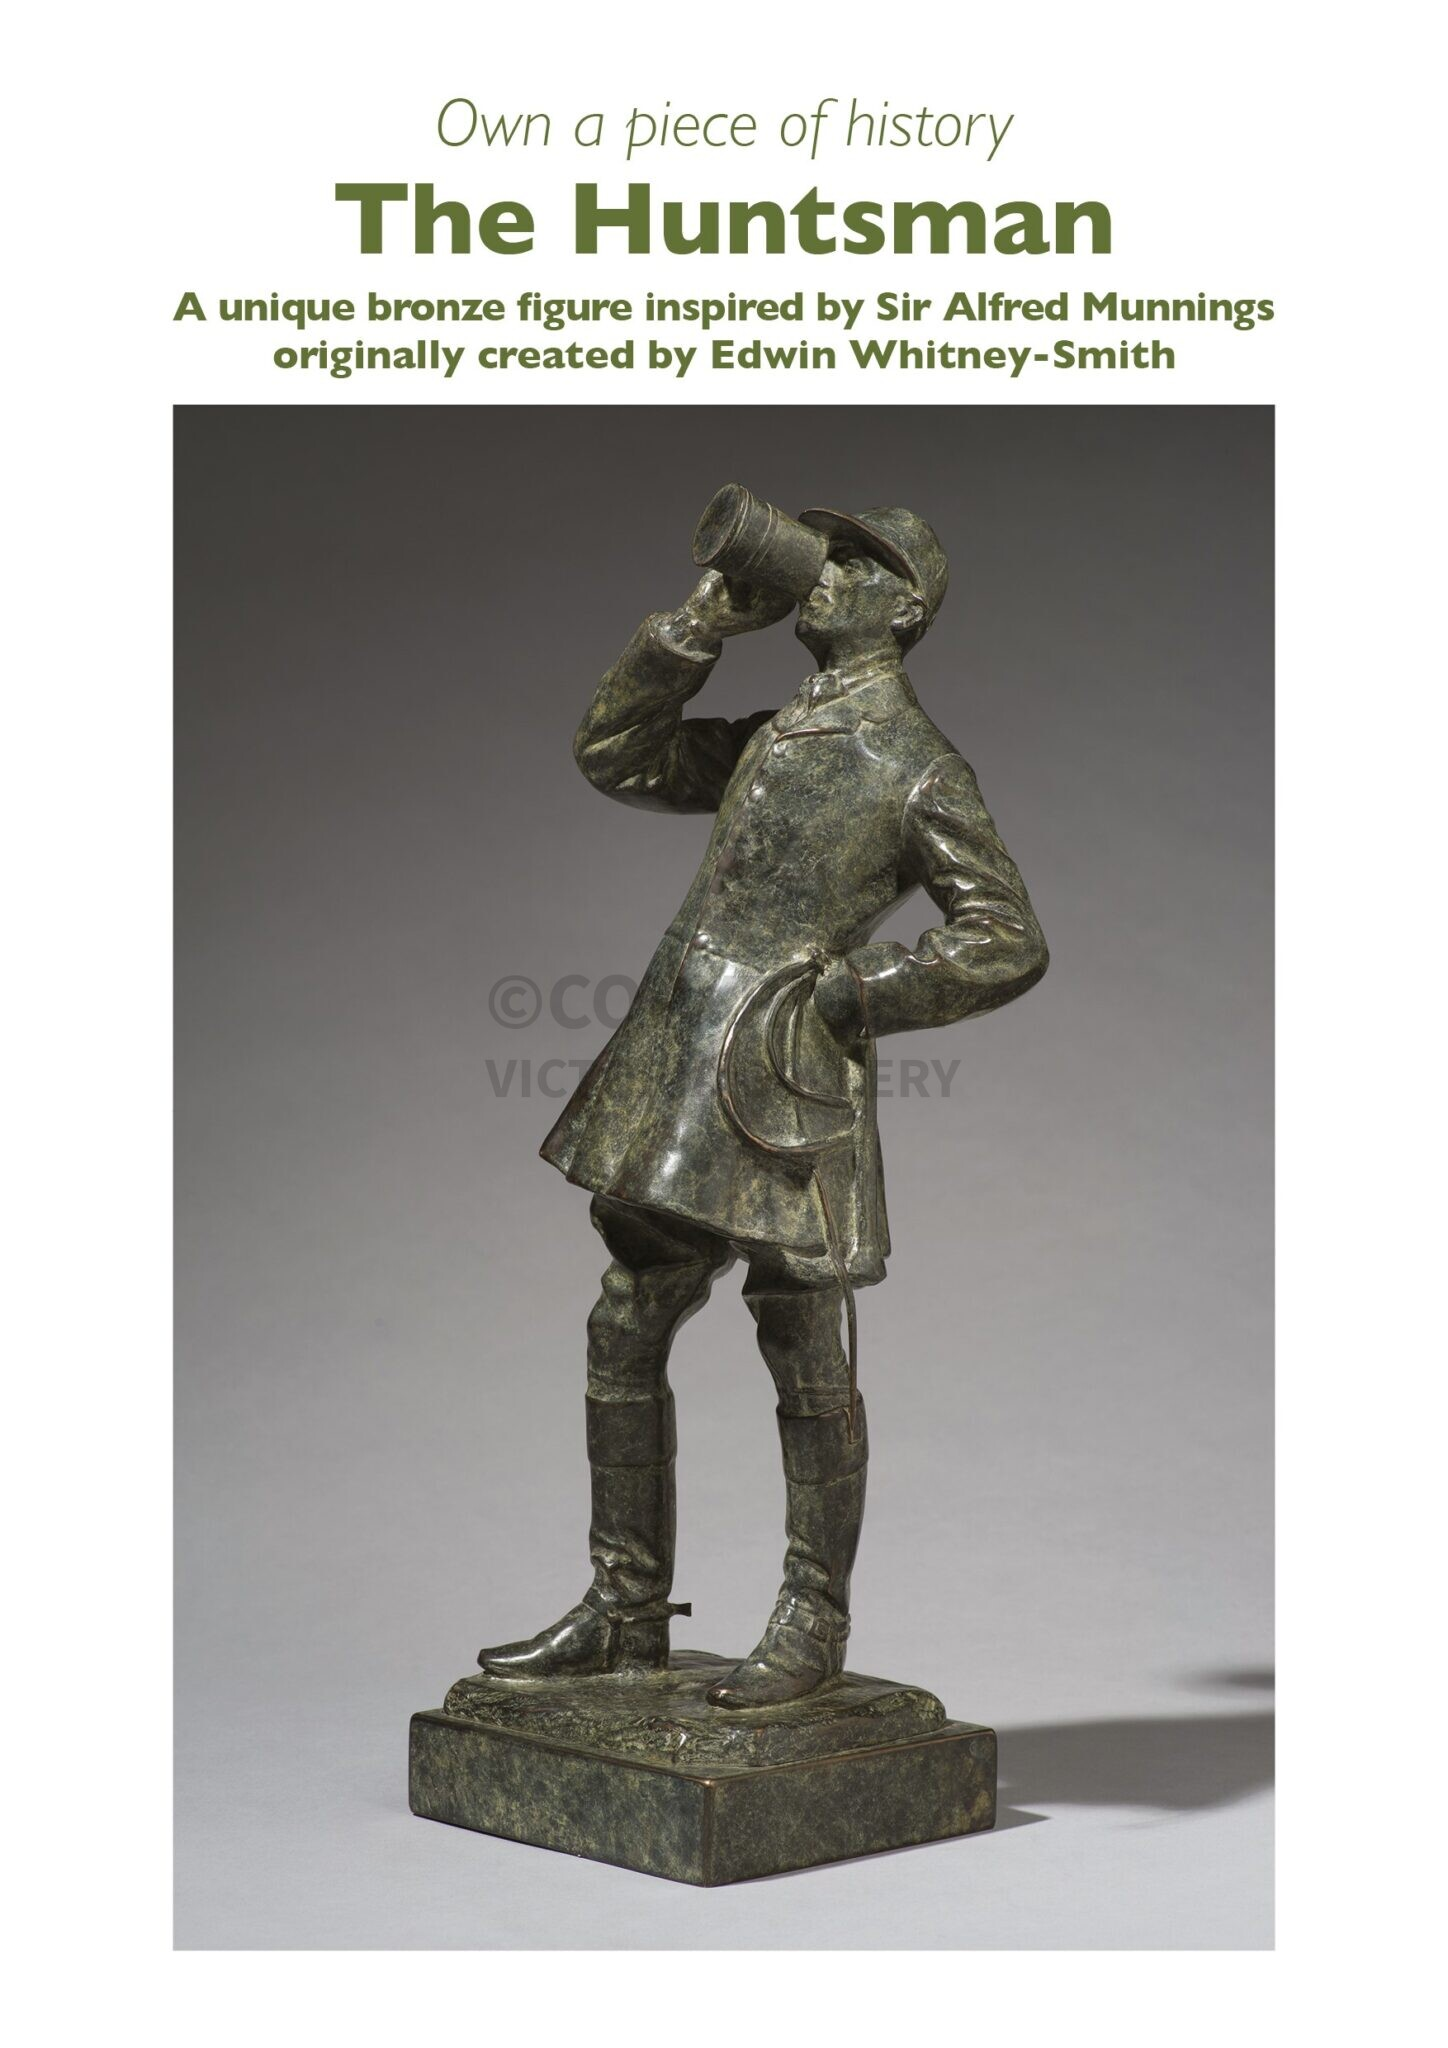 The Munnings Art Museum present 'The Huntsman' by Edwin Whitney-Smith